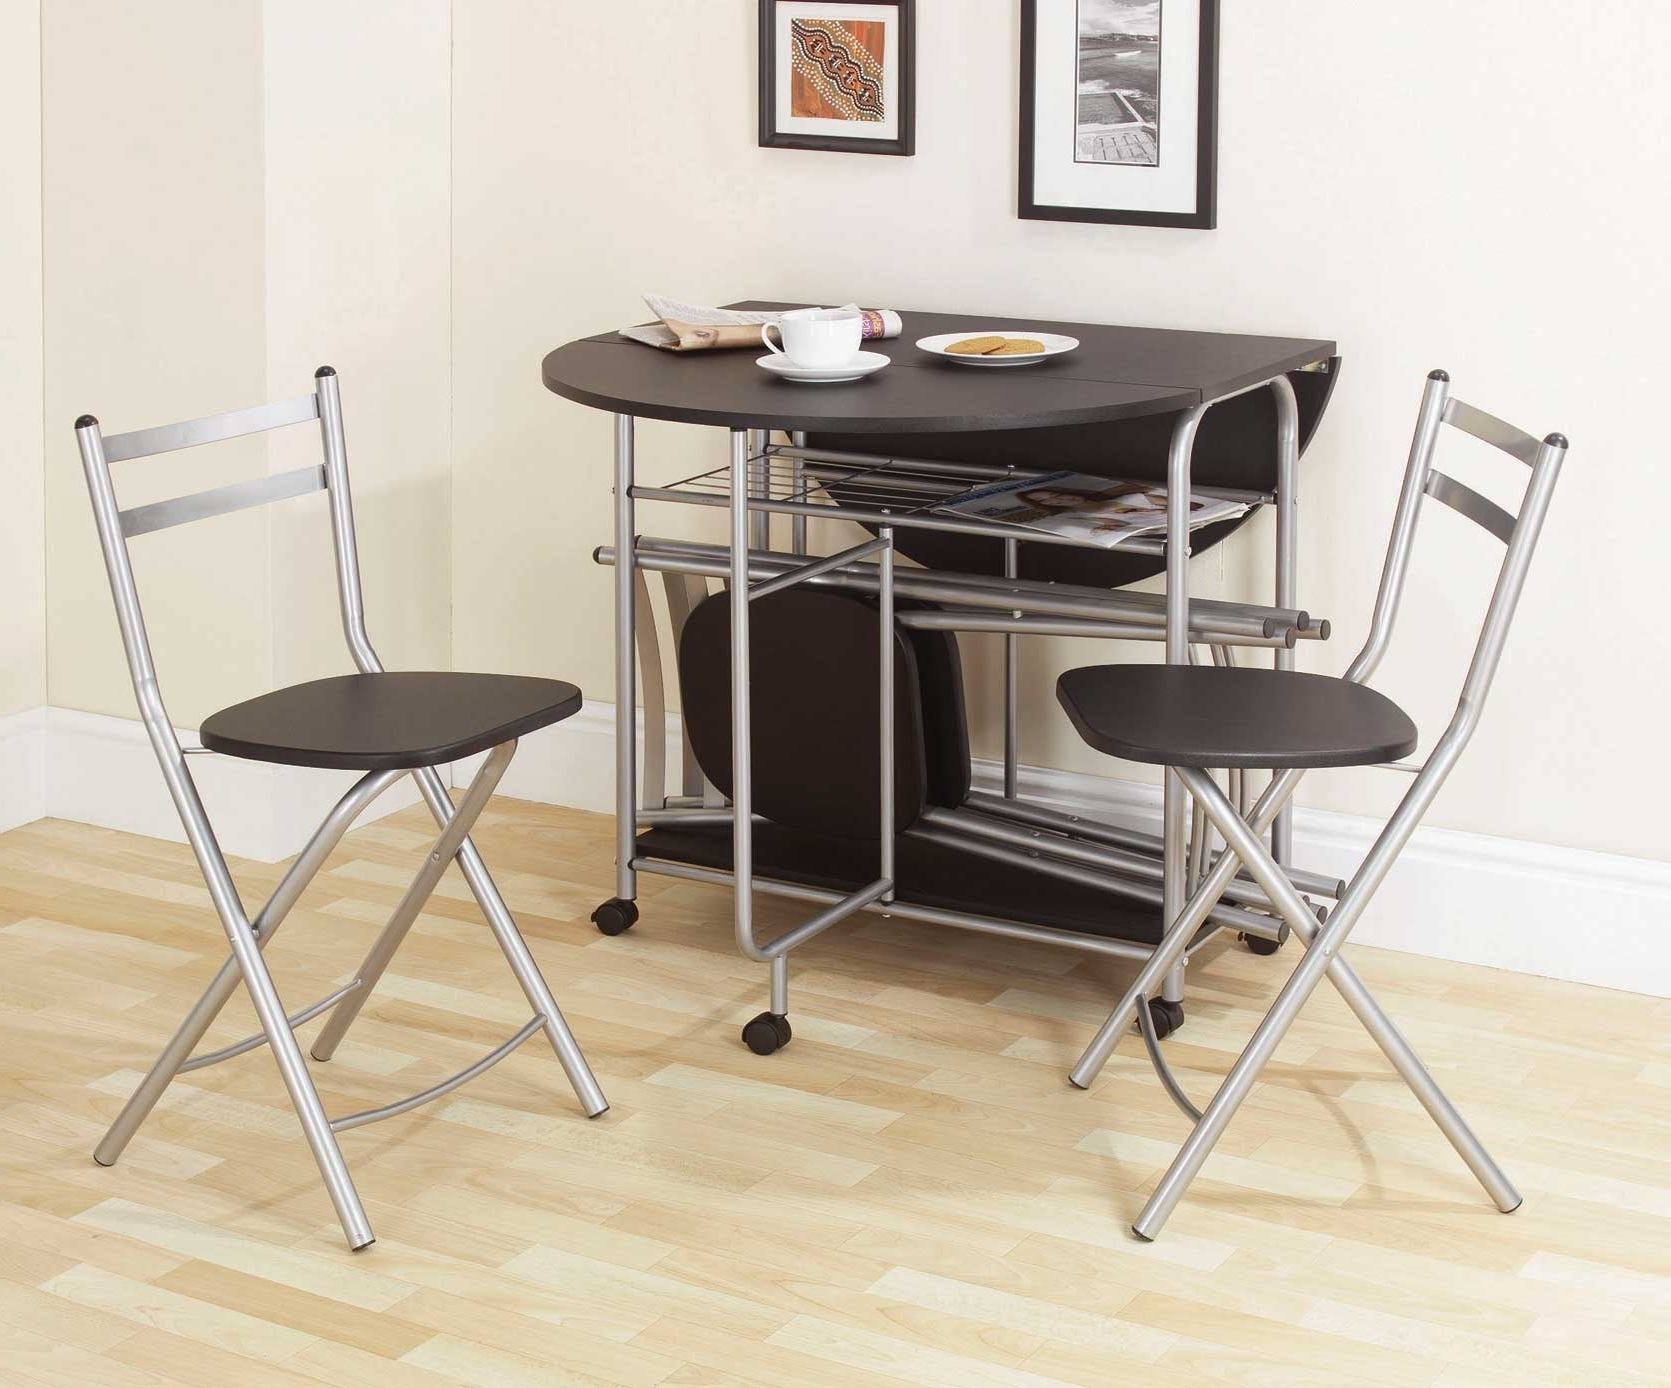 Fold Away Table and Chairs Ideas with